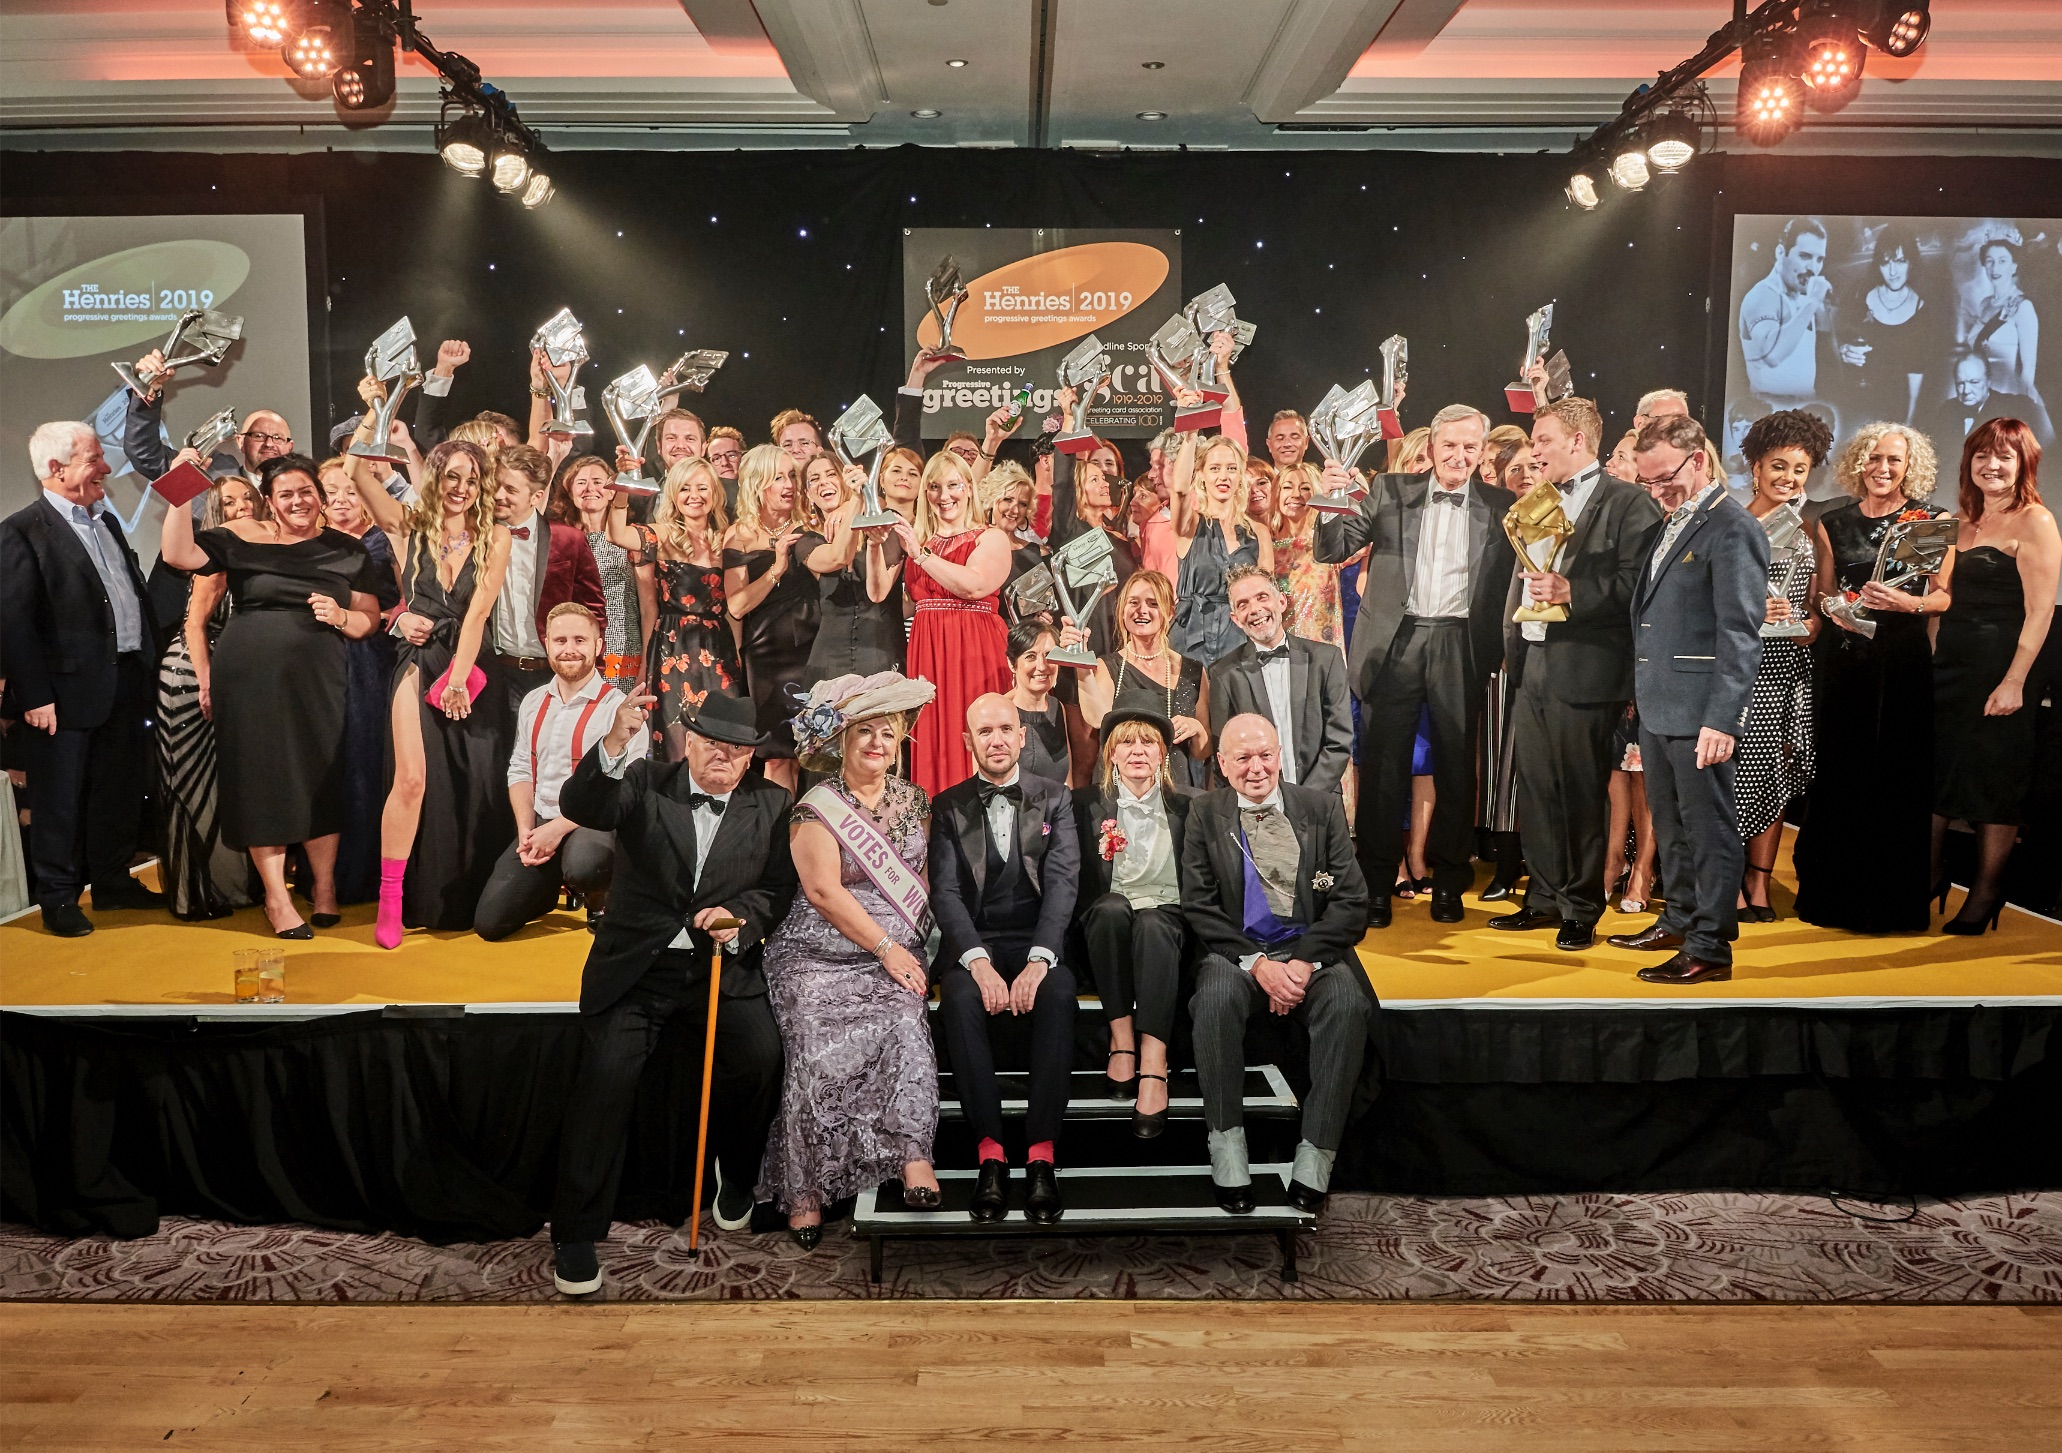 Above: Who will this year's Henries' winners be? Last year's awards event was hosted by Tom Allen (centre front).